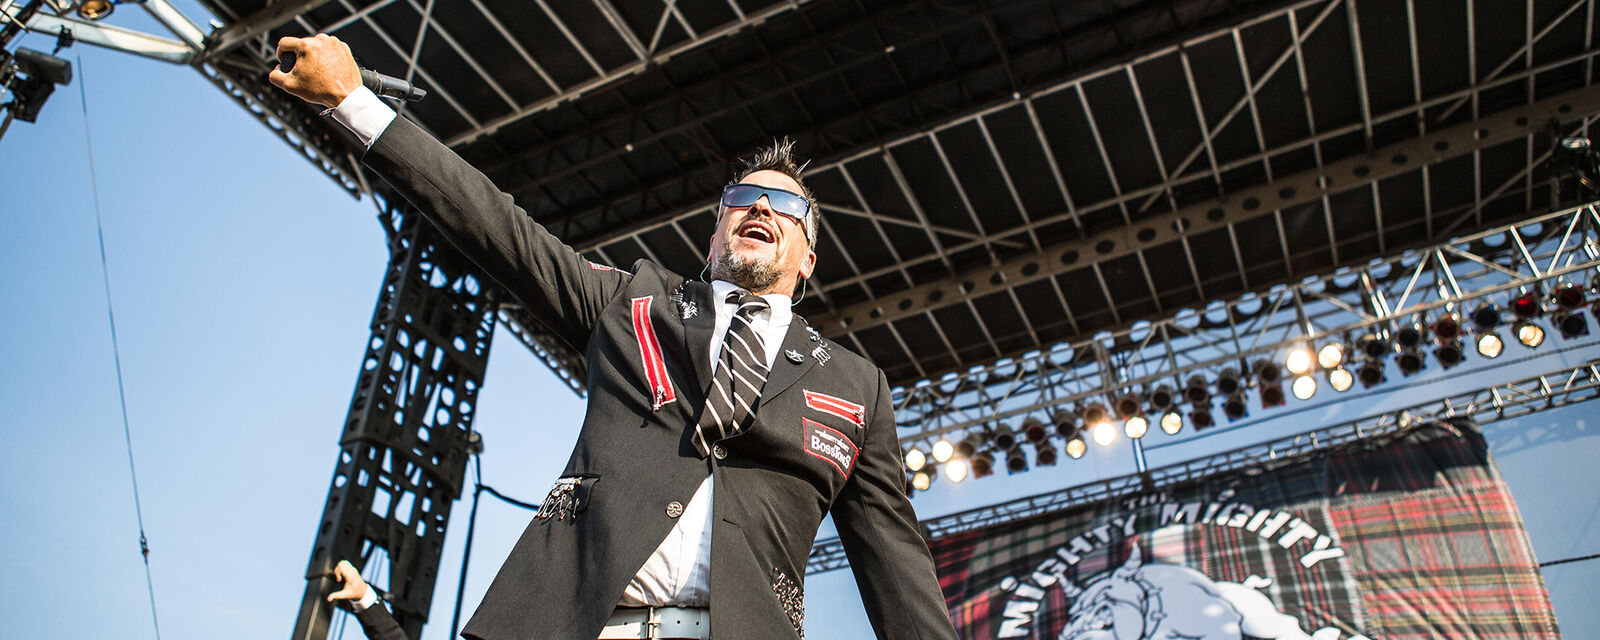 Mighty Mighty Bosstones with The Pietasters, Fishbone, Toots and the Maytals, The Planet Smashers, Bouncing Souls and more